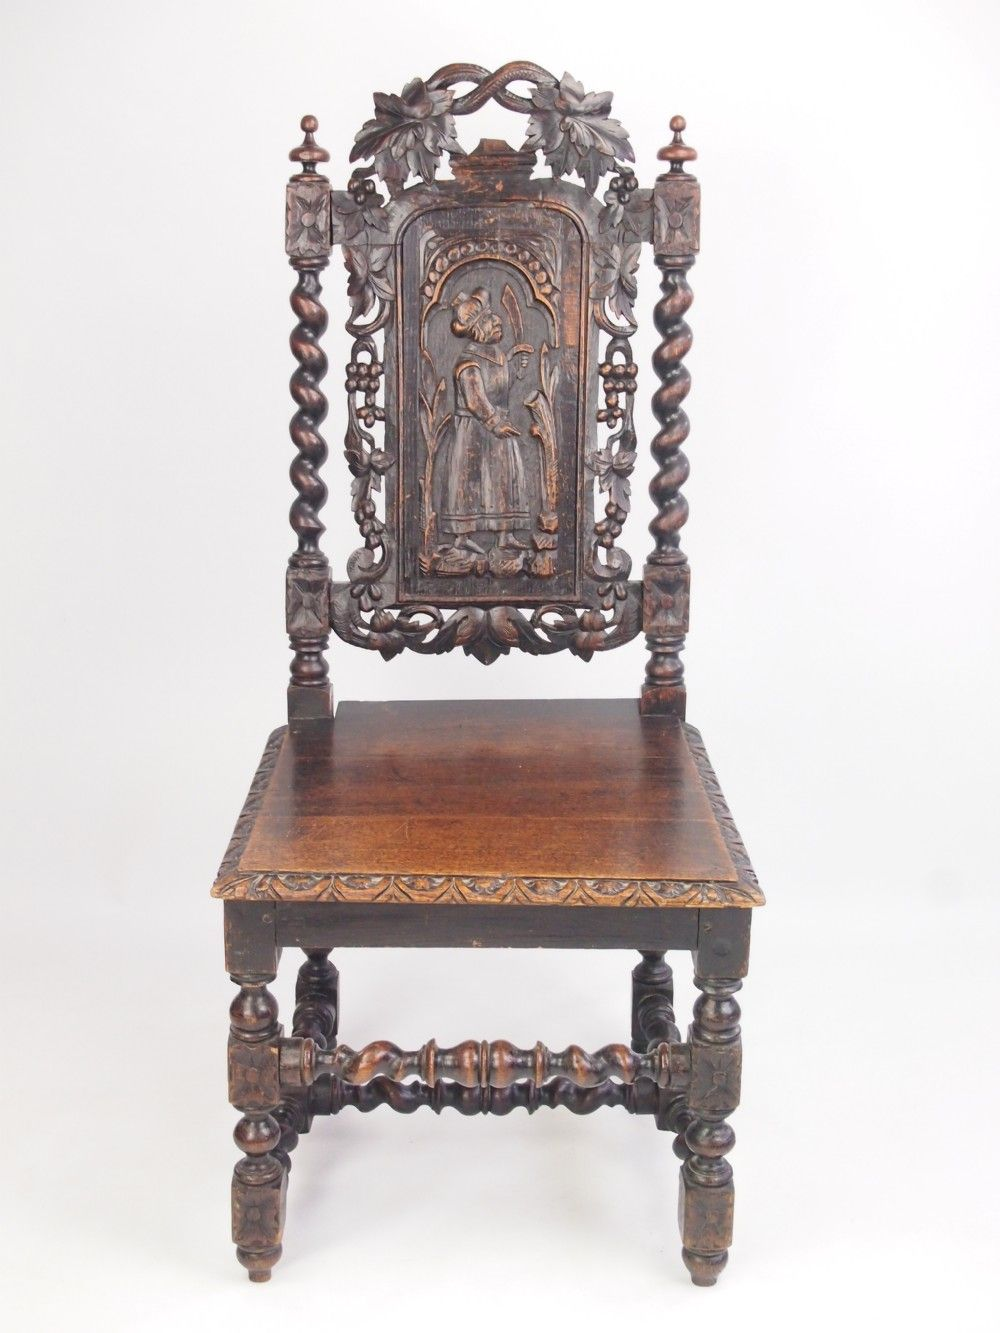 ANTIQUE VICTORIAN CARVED OAK GOTHIC CHAIR HALL OR DESK CHAIR - ANTIQUE VICTORIAN CARVED OAK GOTHIC CHAIR HALL OR DESK CHAIR